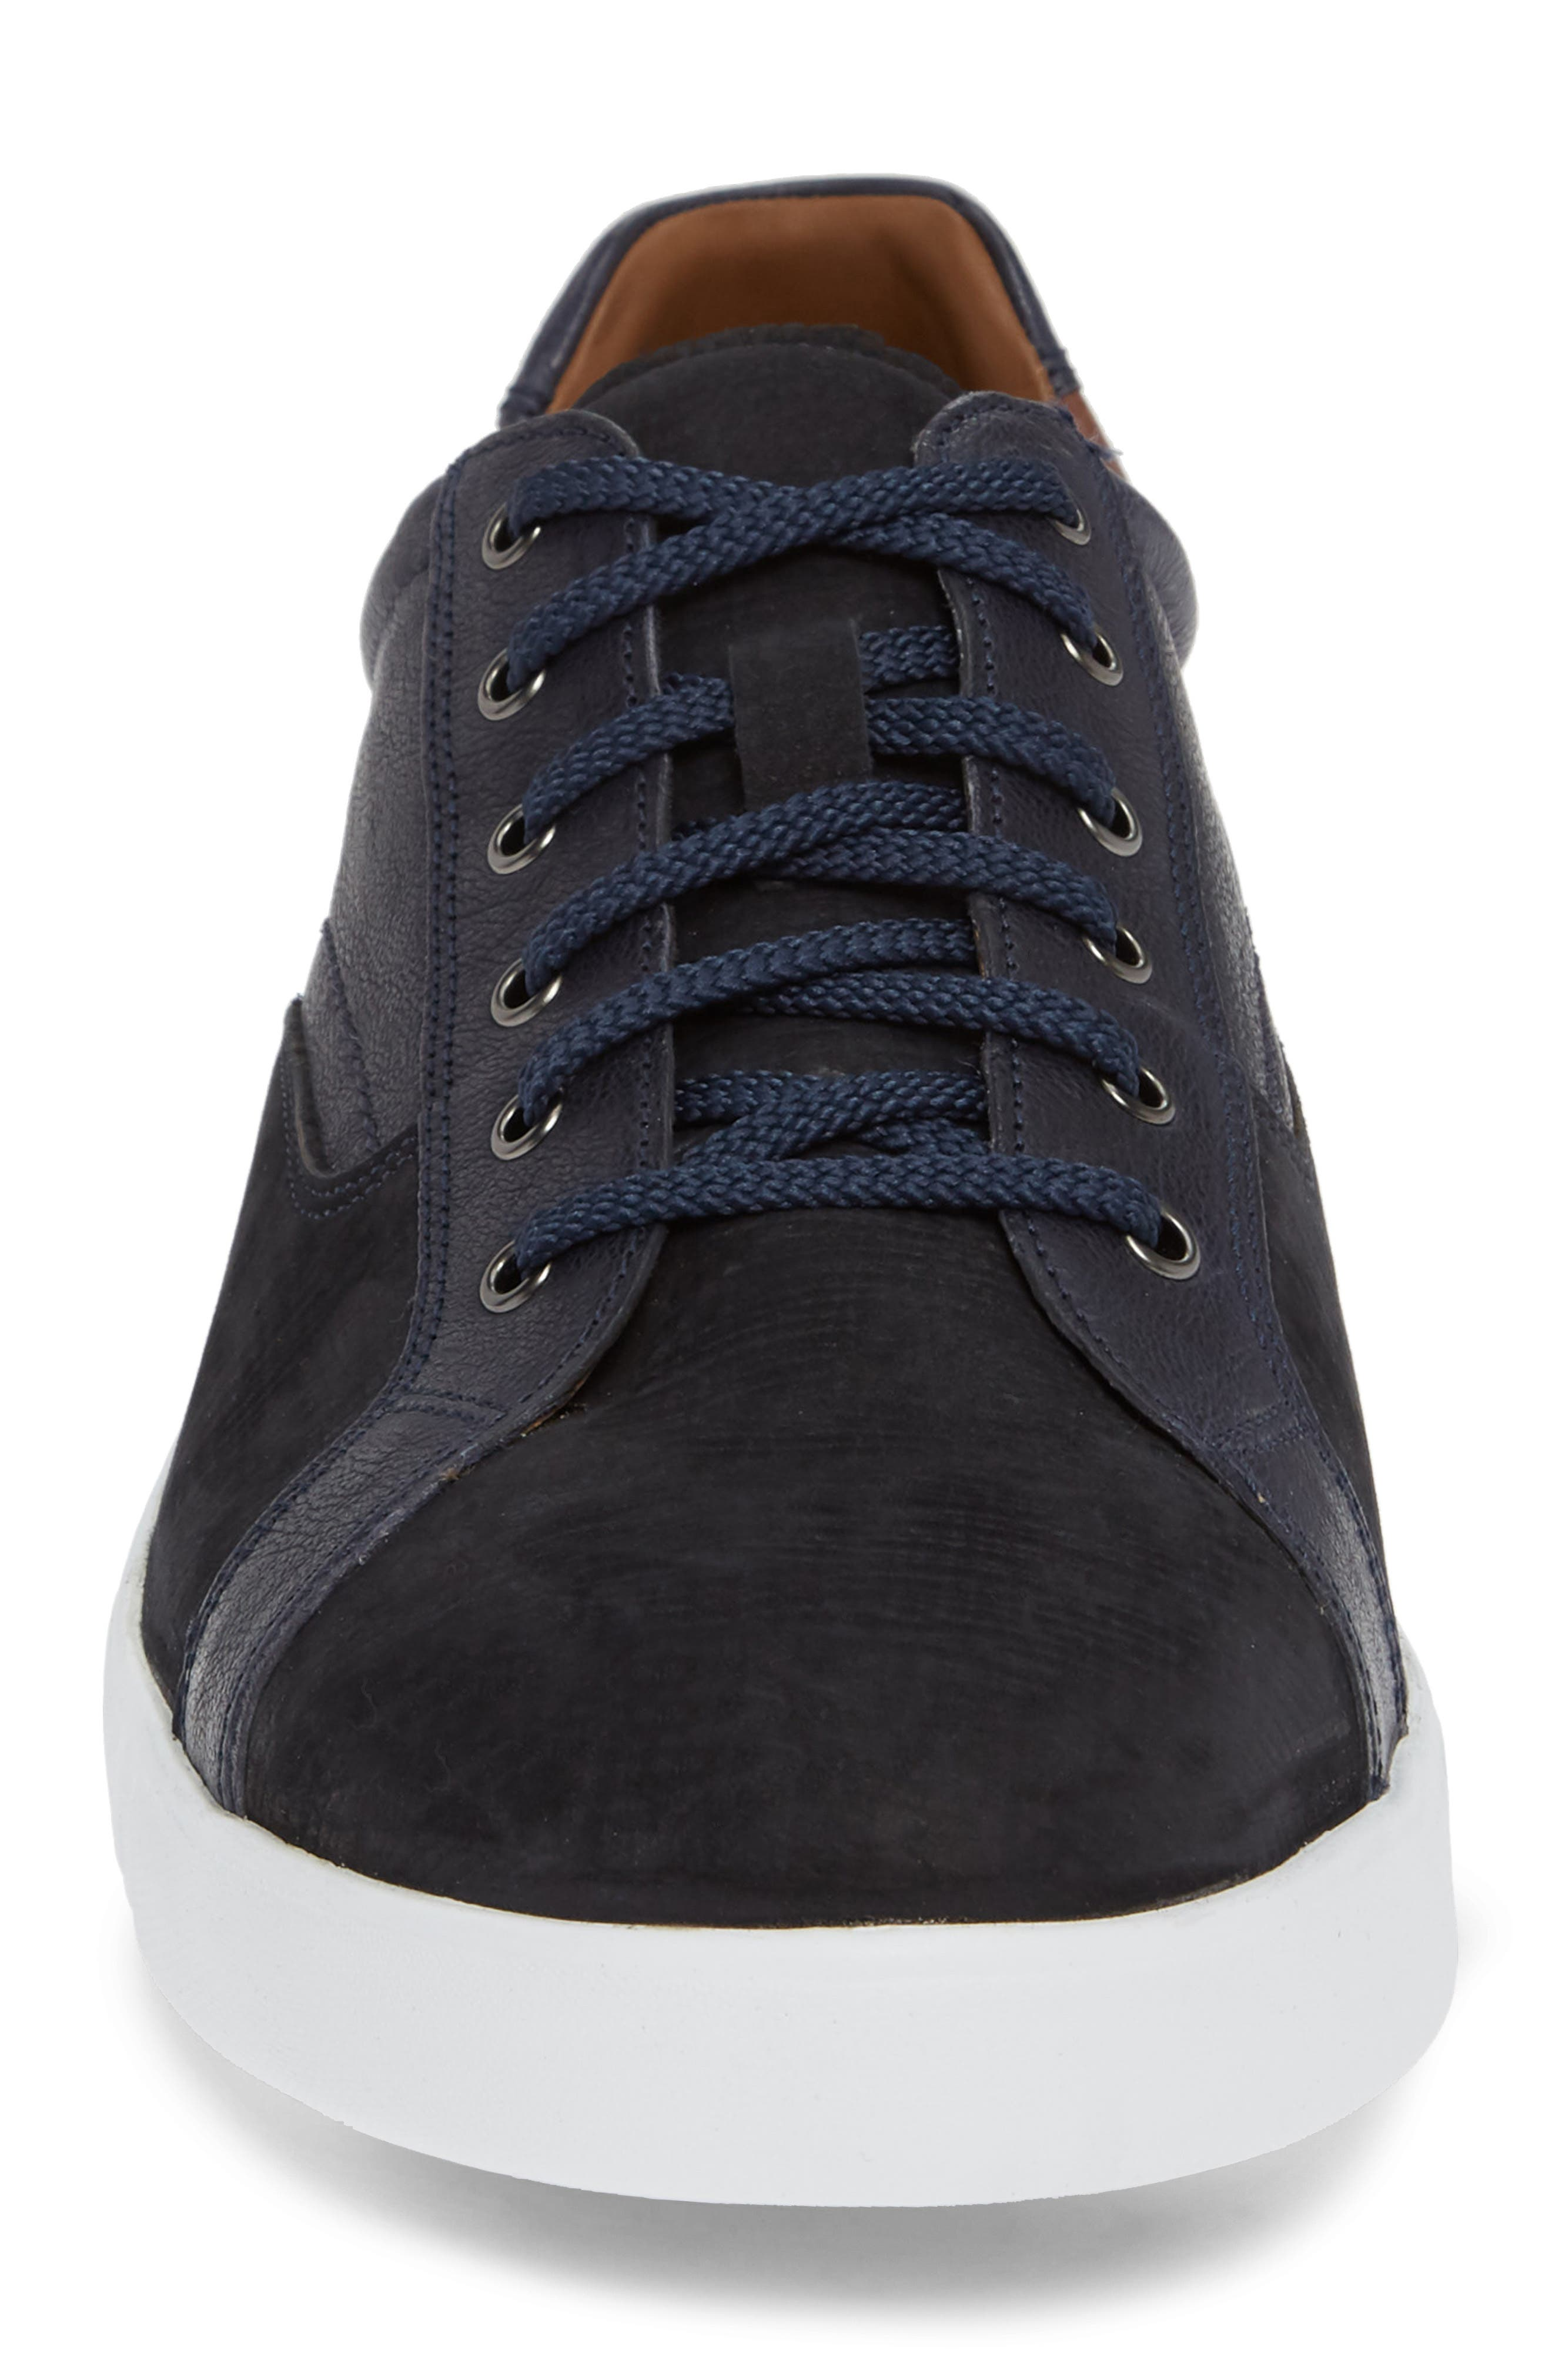 McFarland Sneaker,                             Alternate thumbnail 4, color,                             NAVY NUBUCK